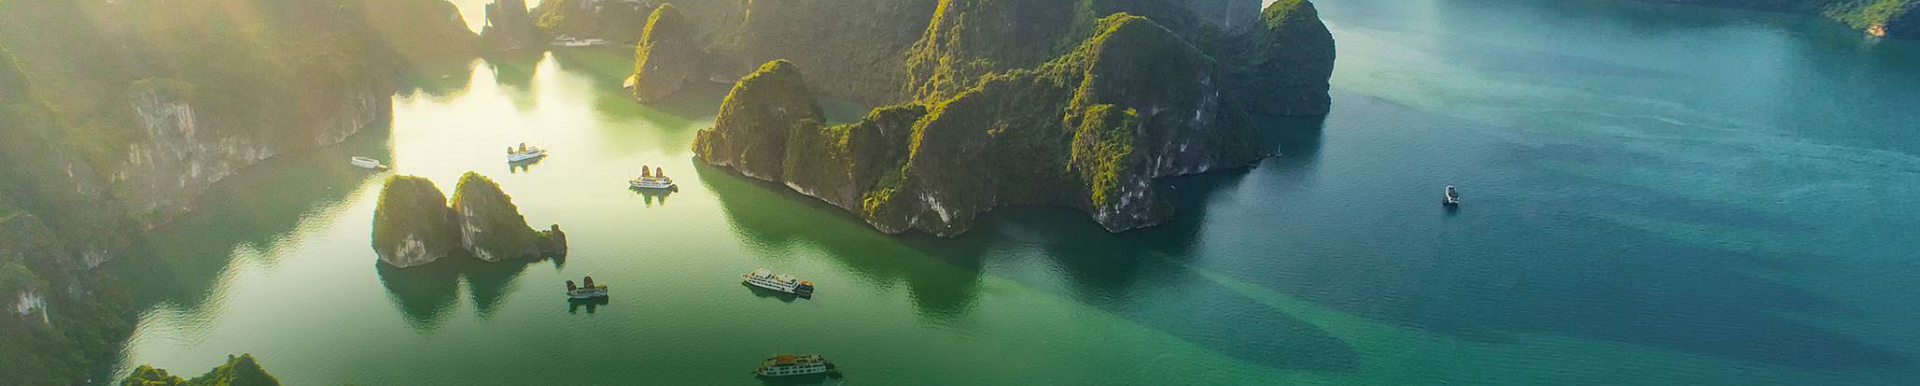 Halong Bay Tours - Home + Best